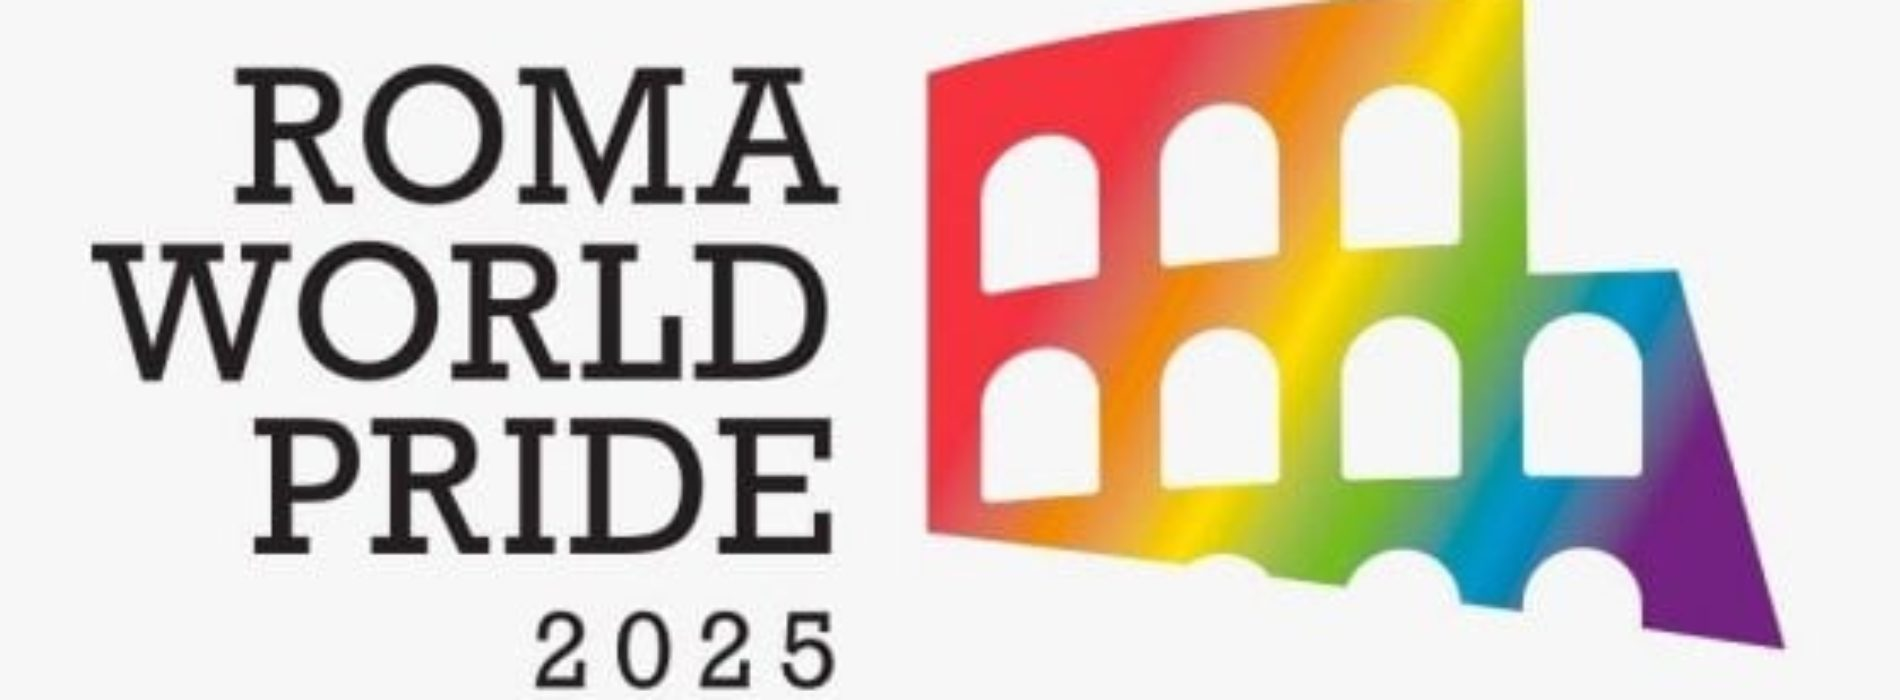 Roma World Pride 2025